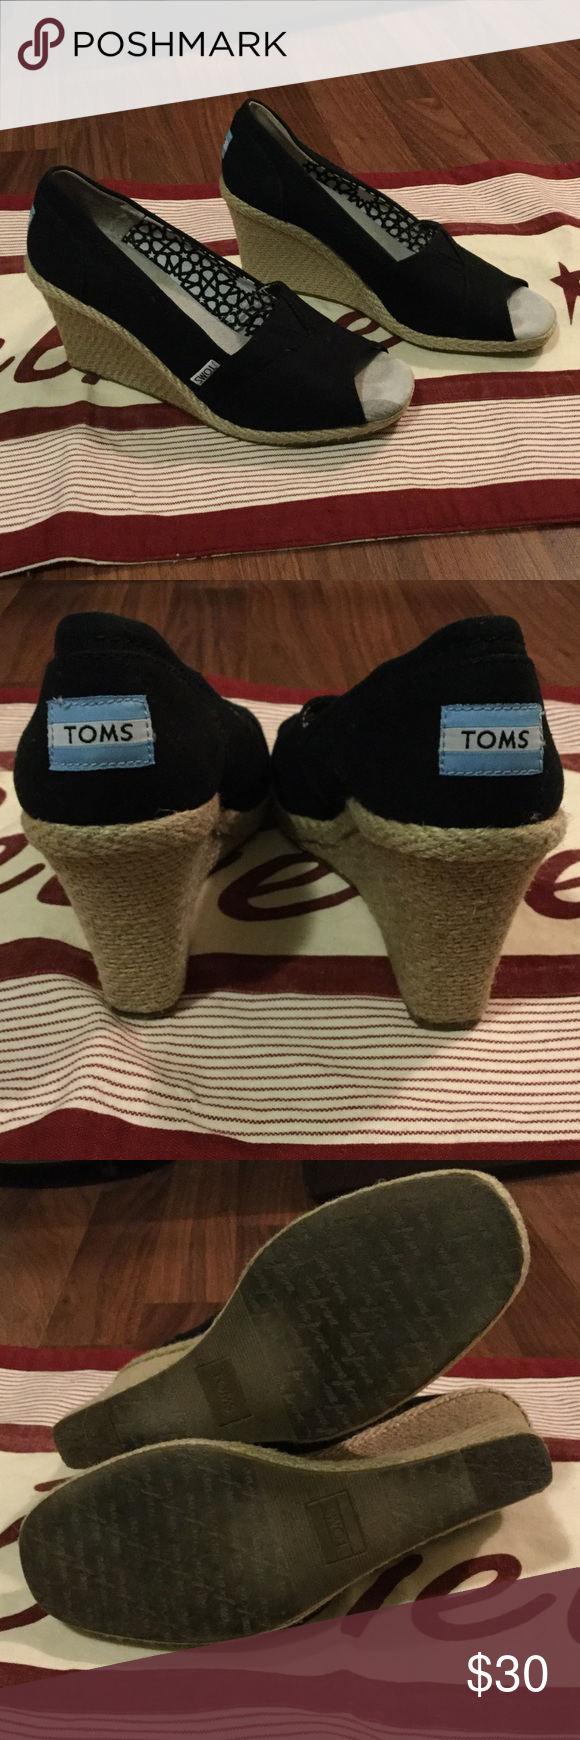 Toms size 8 black wedge peep toe shoe Toms size 8 black wedge peep toe shoe. Can't get enough of the Black and Tan combo! Currently $51 on TOMS website and these are barely used. #PlywoodAndPearls TOMS Shoes Wedges